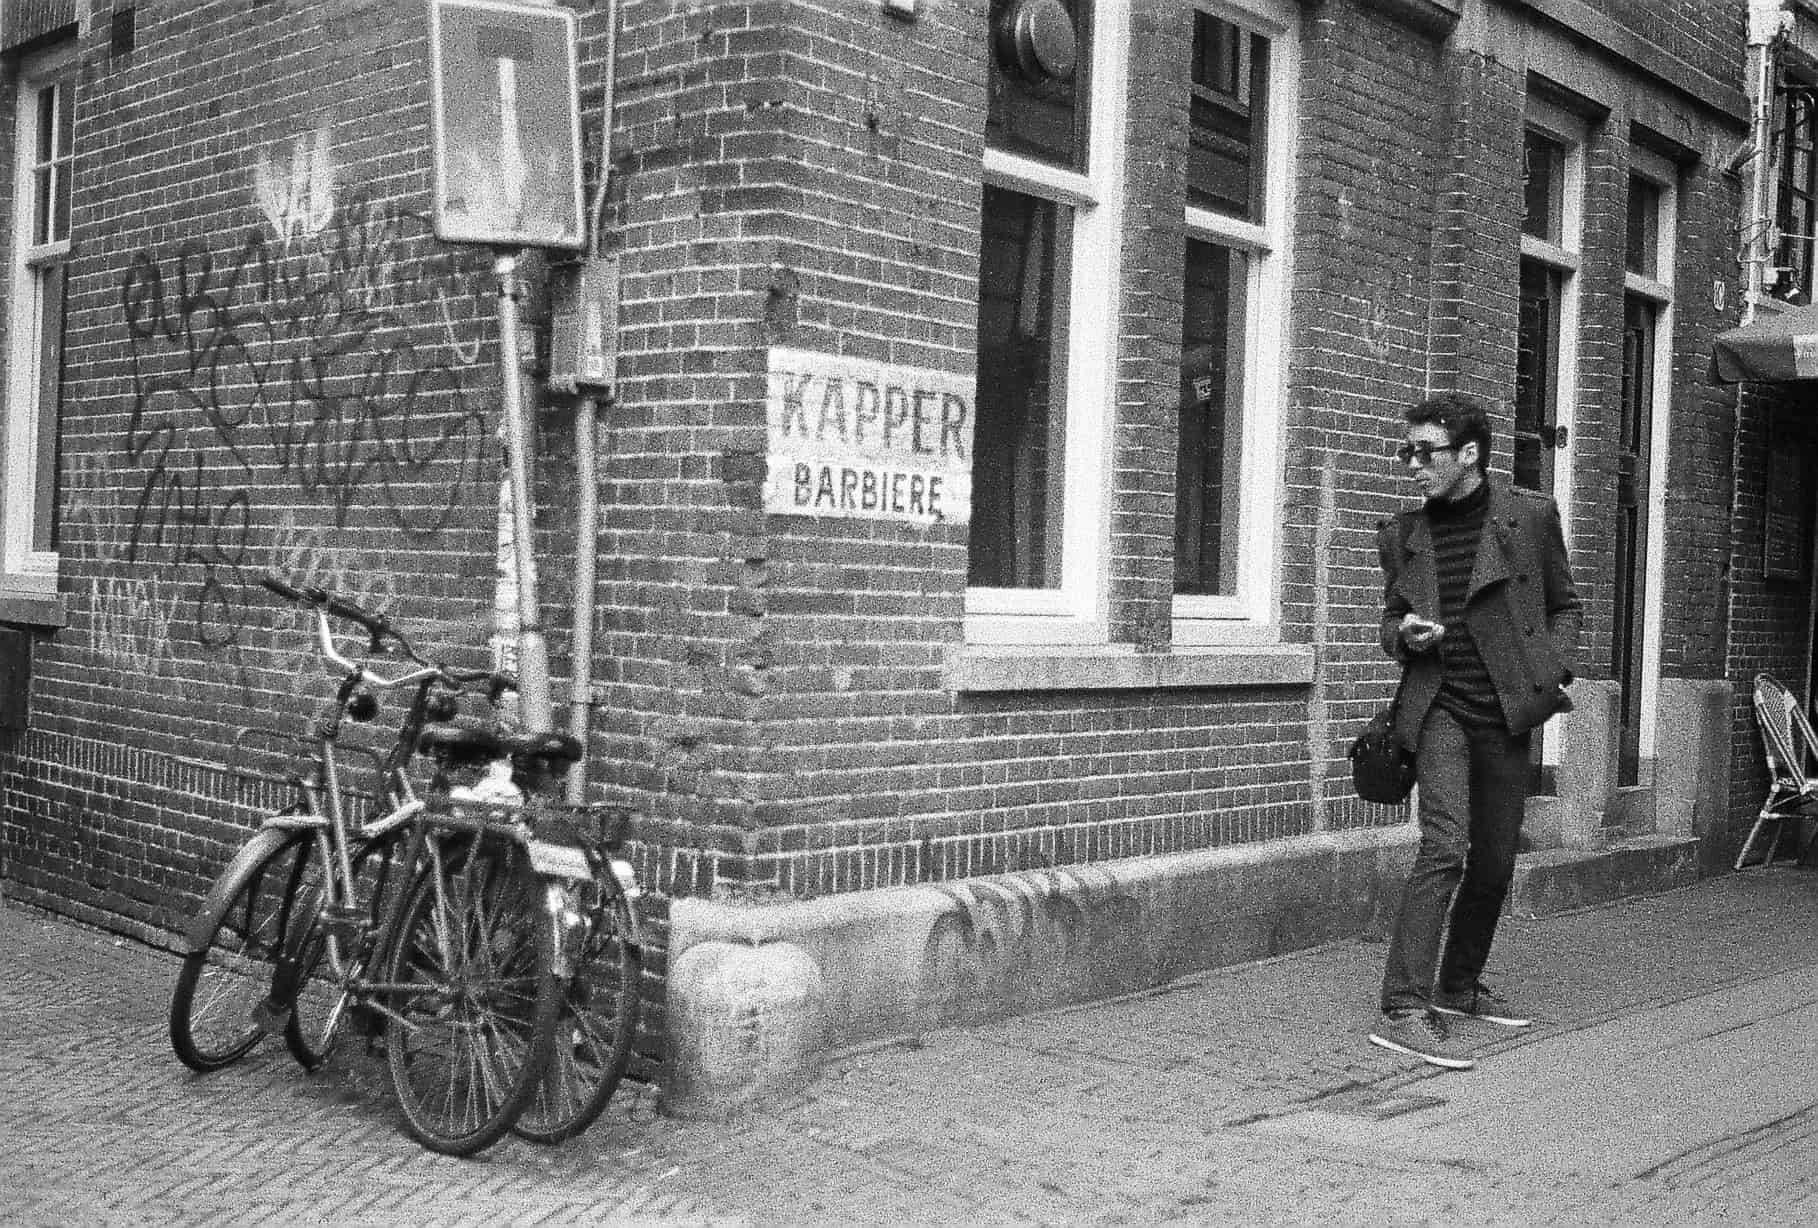 Lee and Bikes in Amsterdam